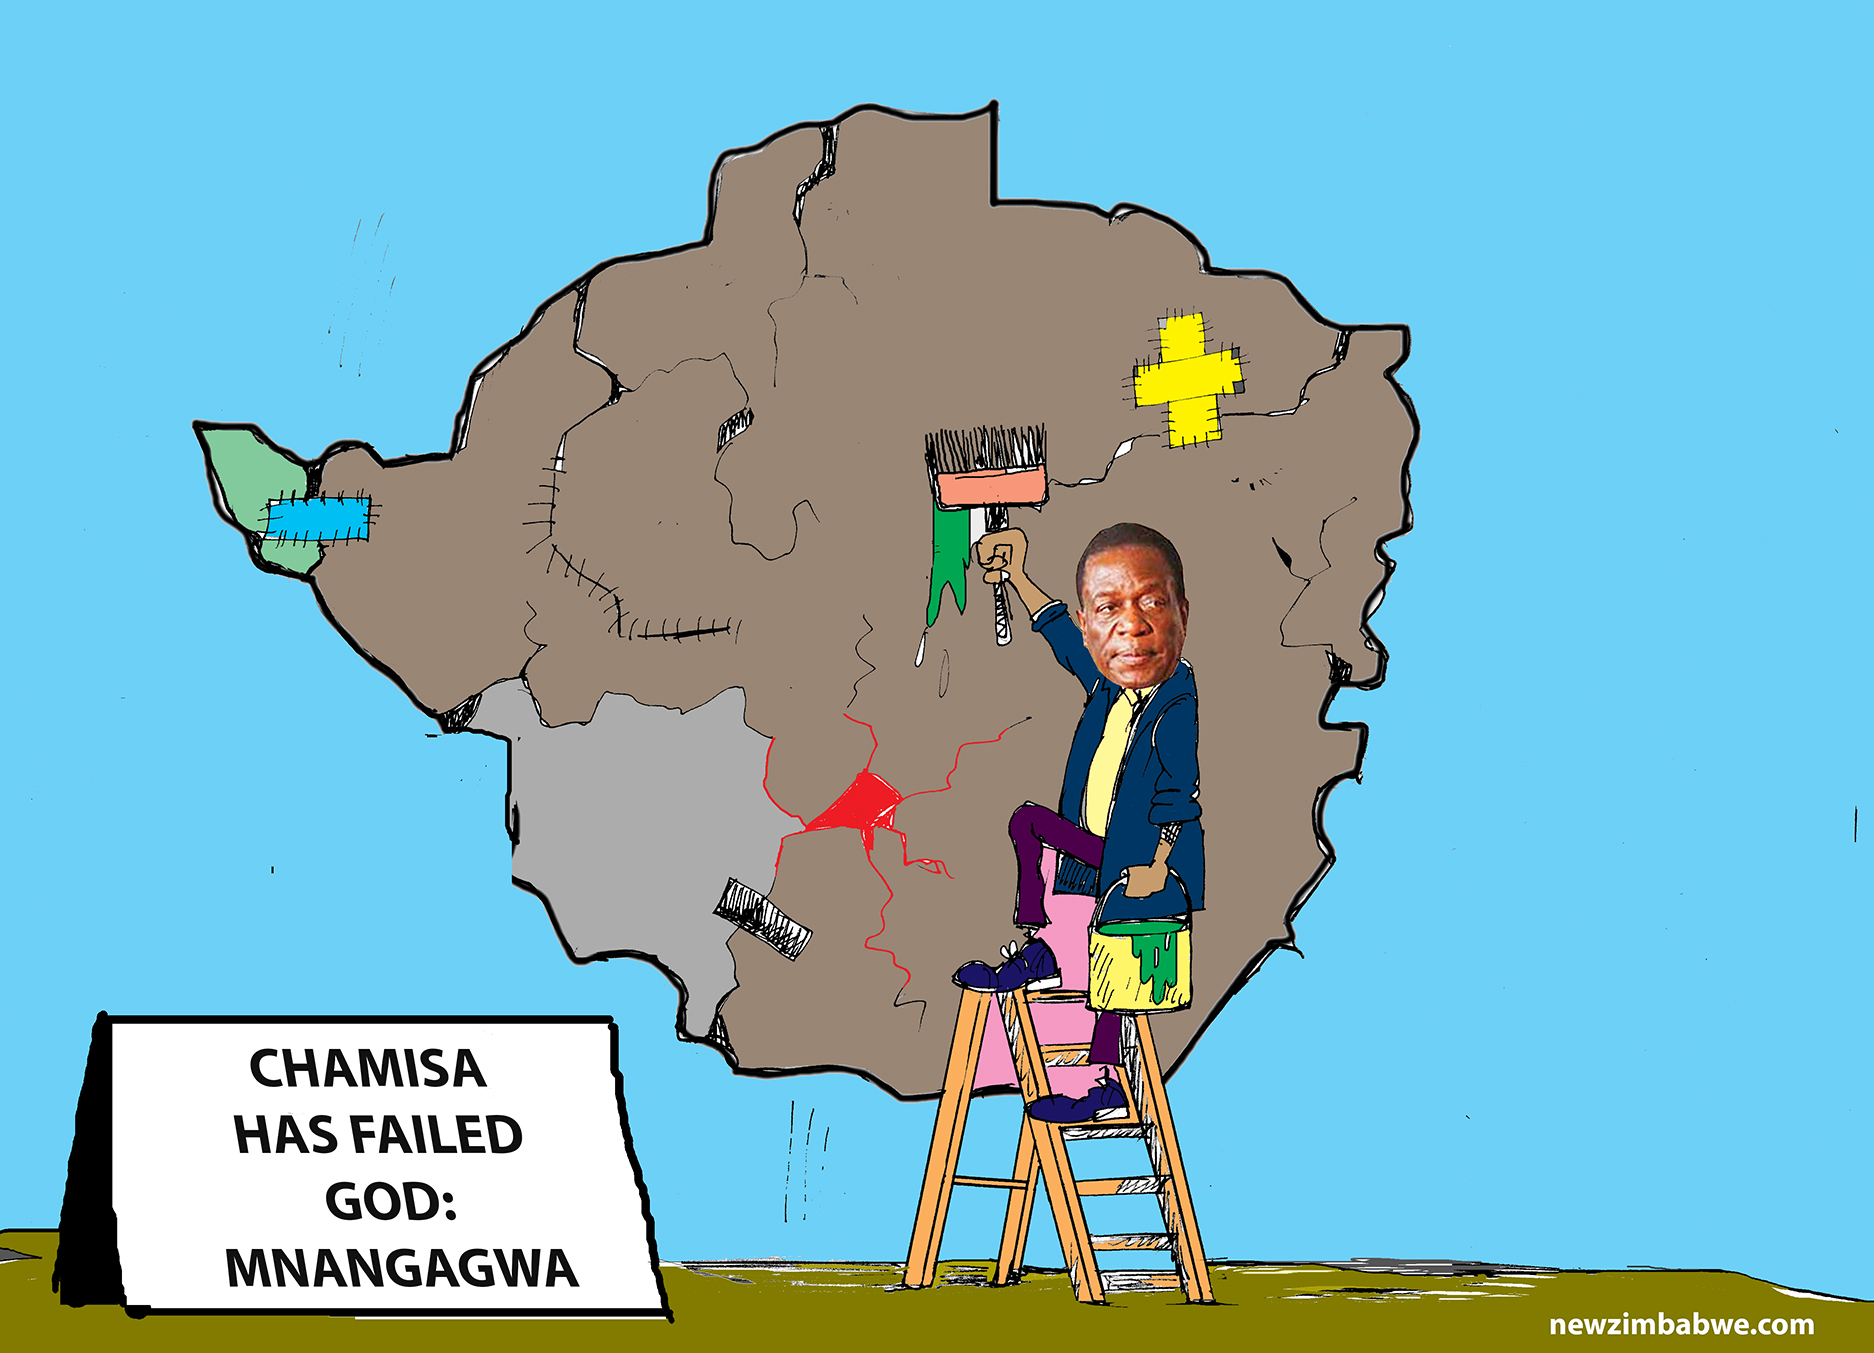 Chamisa has failed Zimbabwe-ED